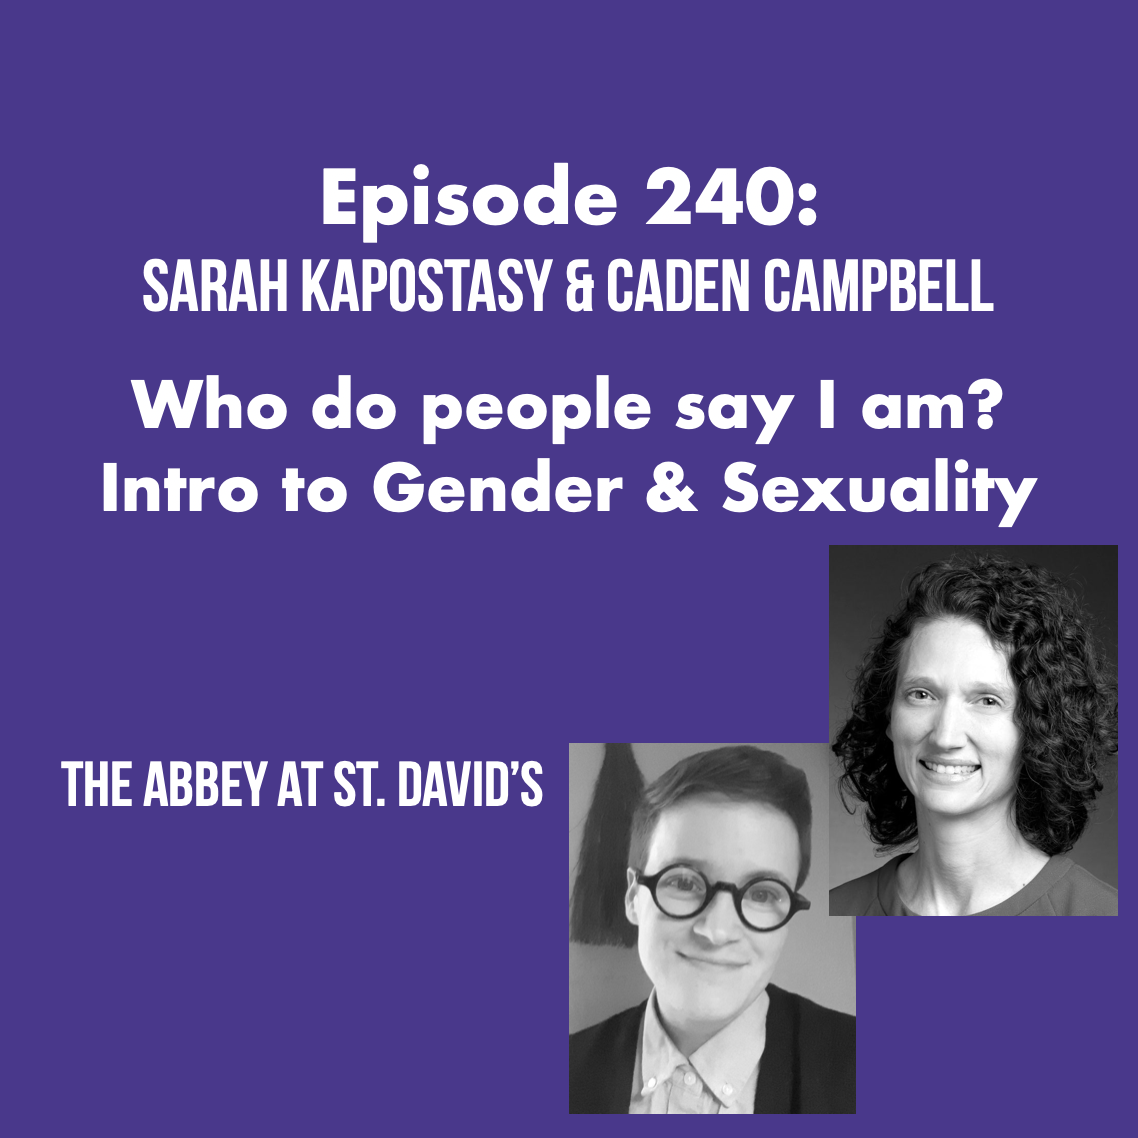 Episode 240: Who Do People Say I Am? Intro to Gender and Sexuality in Youth (and Everyone Else), with Sarah Kapostasy and Caden Campbell